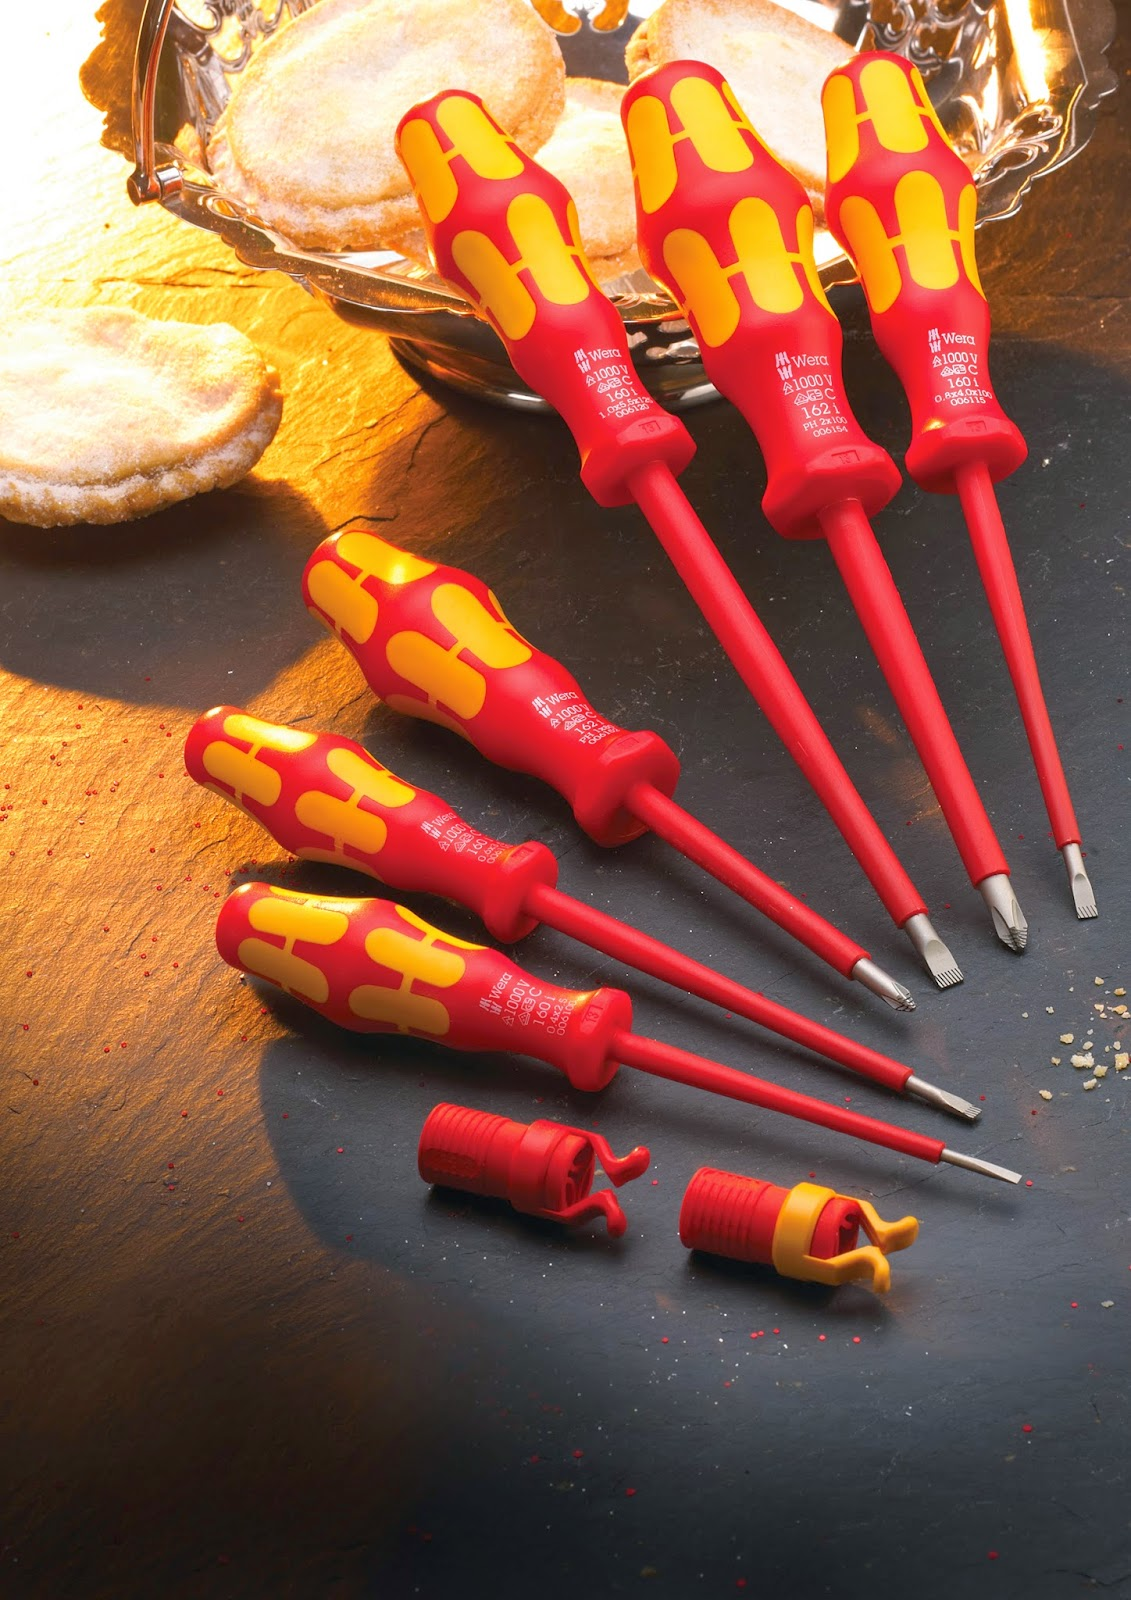 http://www.beesleyandfildes.co.uk/wera-6-piece-vde-screwdriver-set-with-2-free-screwgrippers-ref-xms14vdeset/